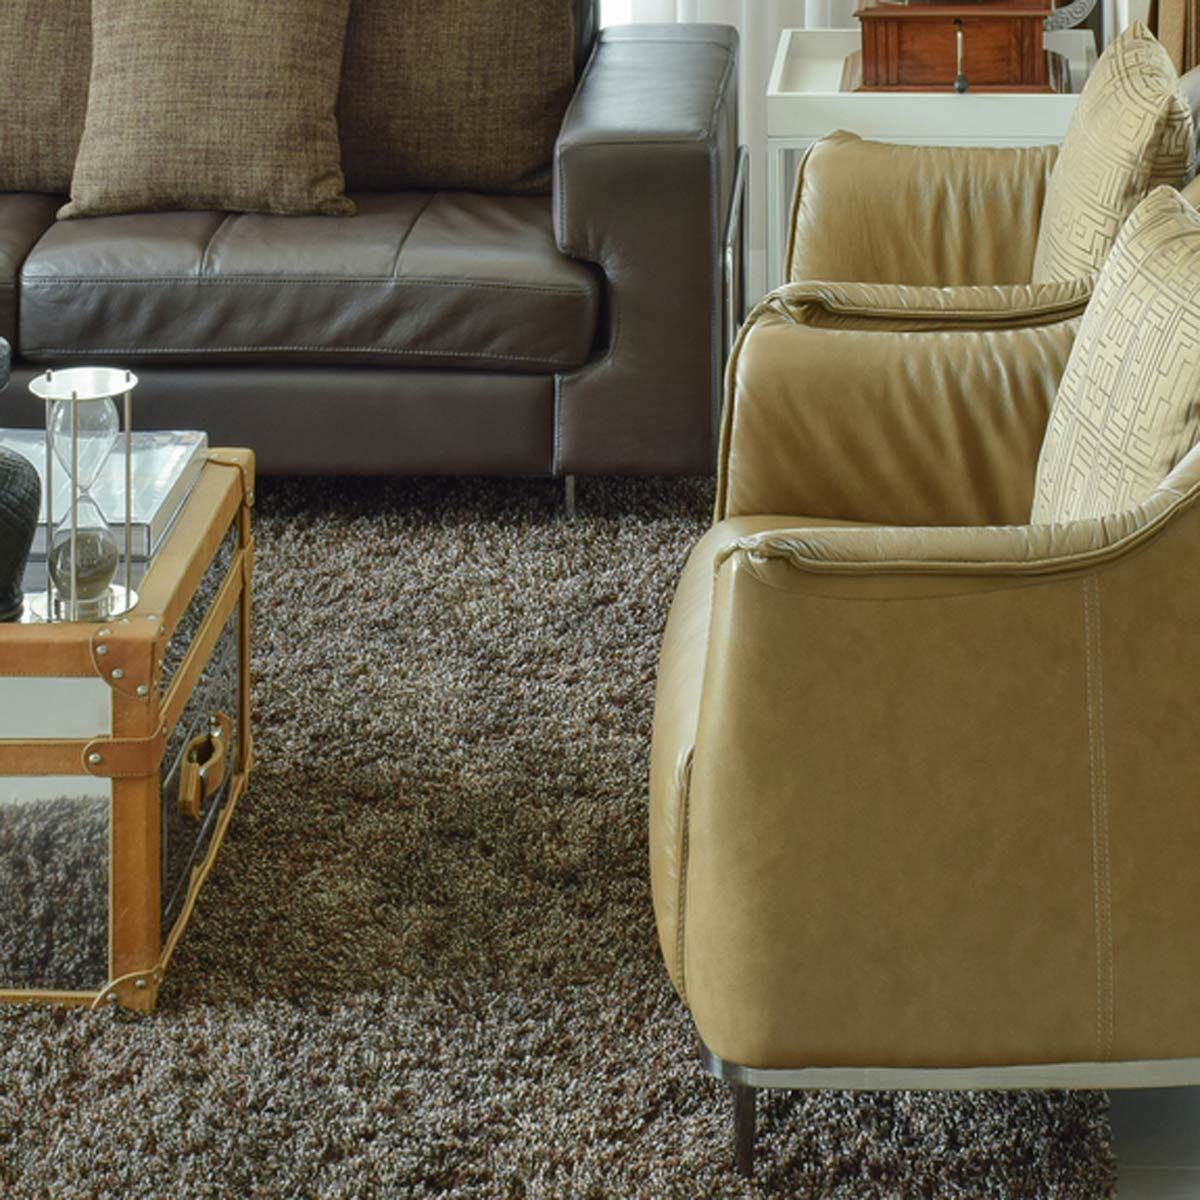 Interior Design Tips: Know How to Use an Area Rug